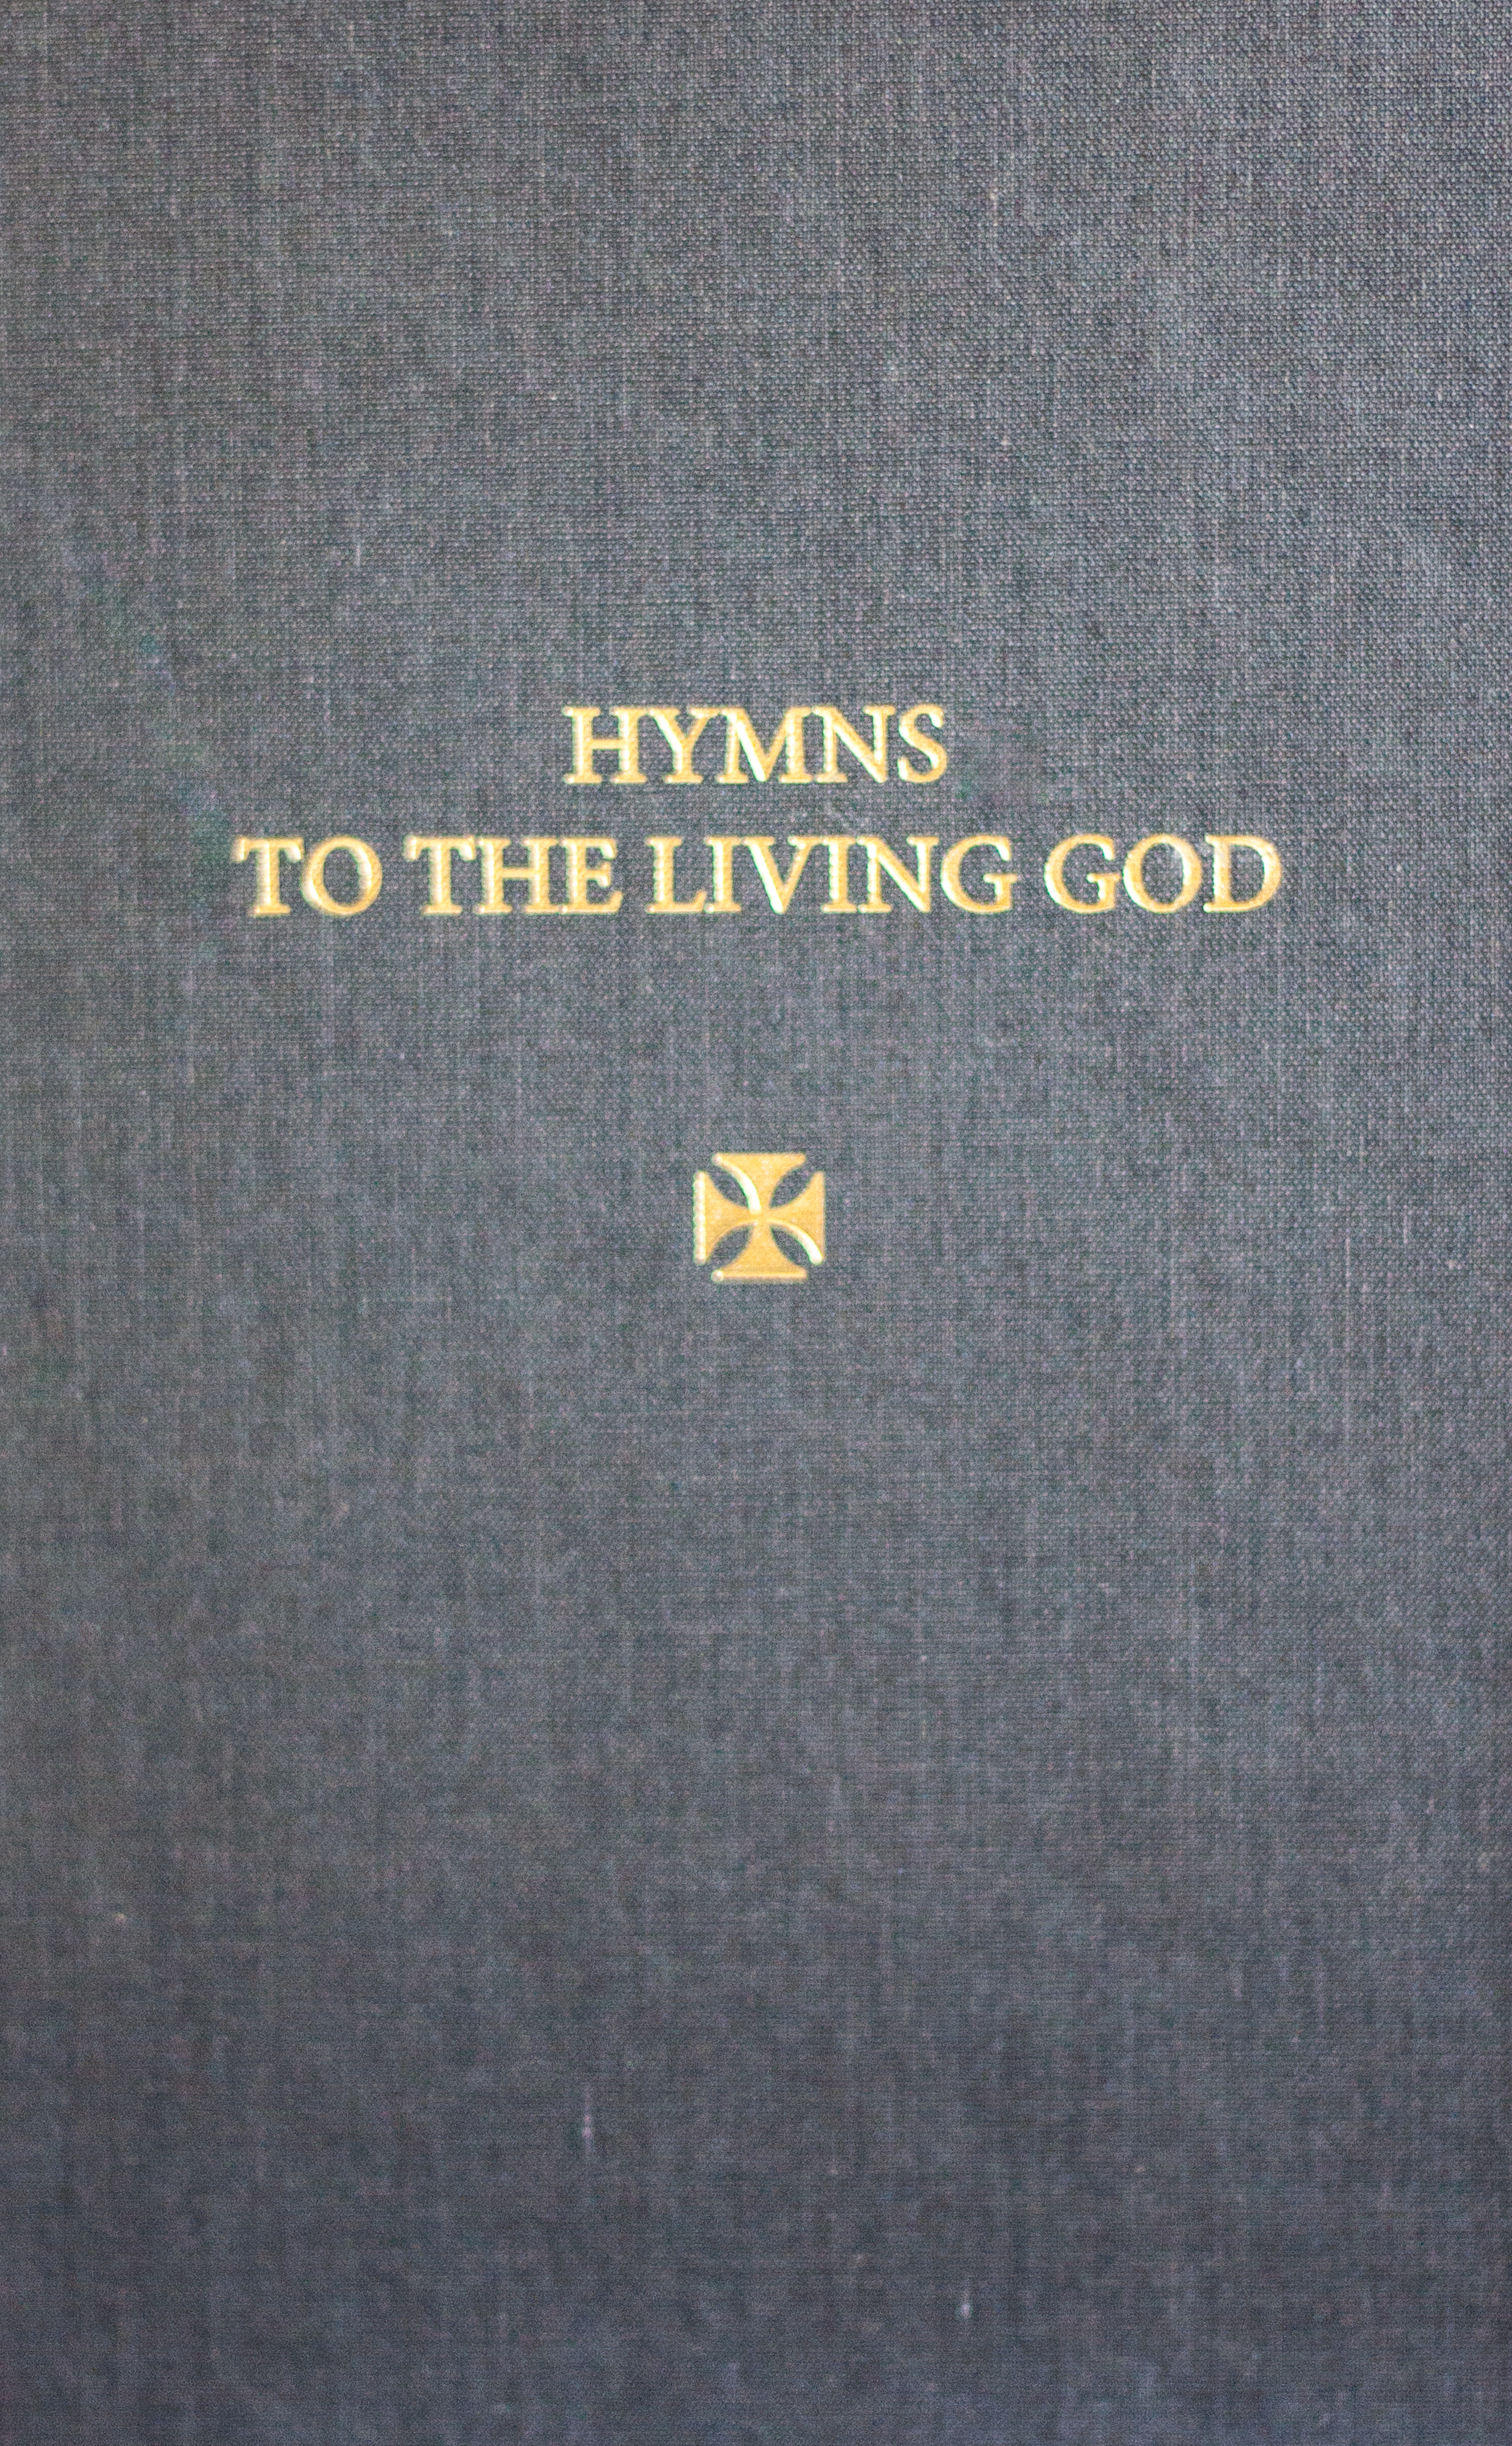 Hymns Ancient and Modern for a New Generation | Religious